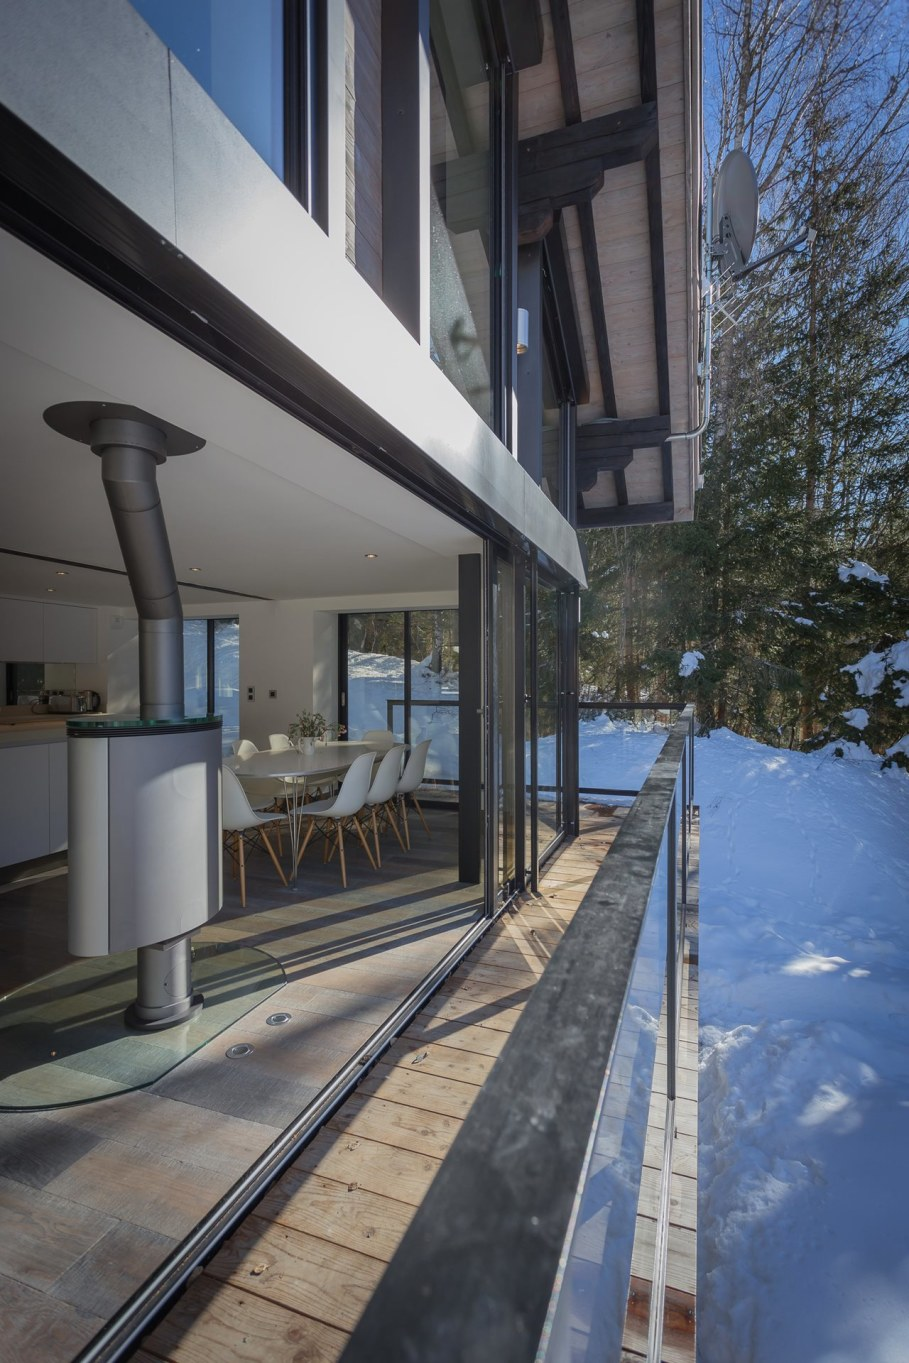 Chalet Dag in Chamonix - Desing ideas